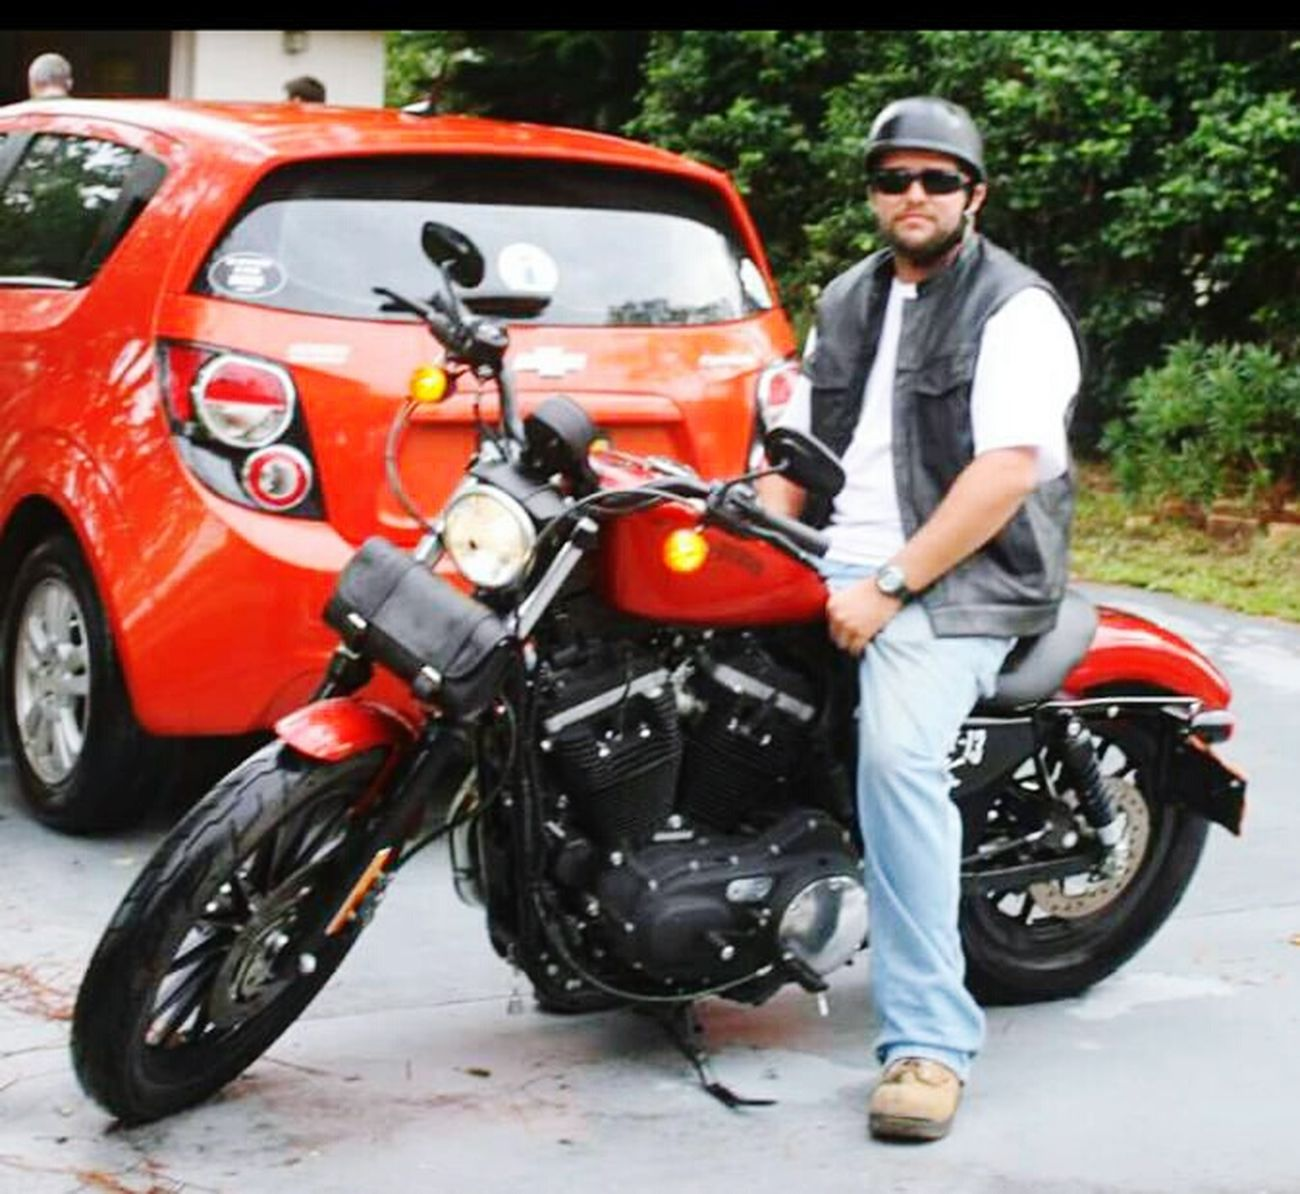 Matching vehicles Matching Vehicles Burnt Orange Daughter Son In Law Helmet Vest Ready To Ride Harley Davidson Bike Chevrolet Sonic